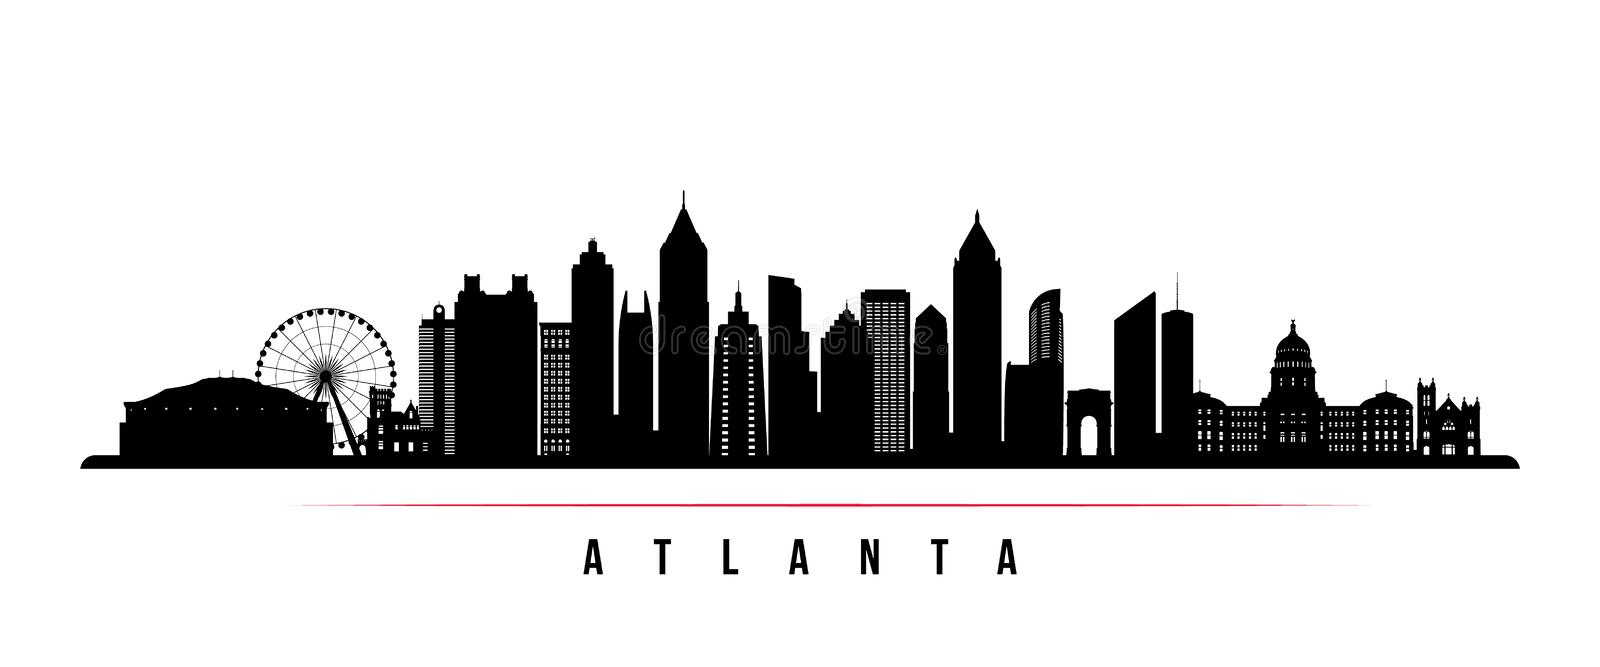 Atlanta city skyline horizontal banner. royalty free illustration